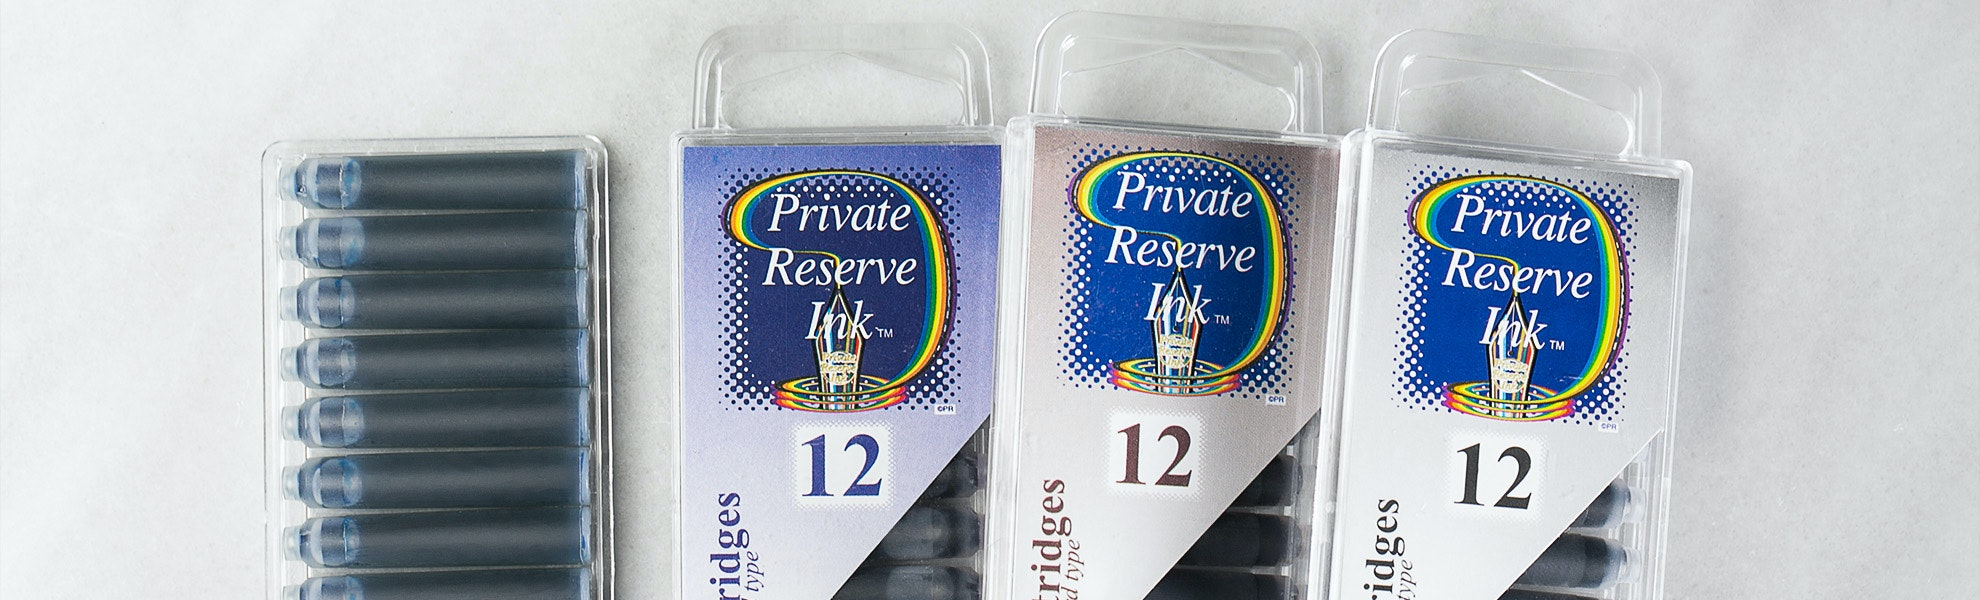 Private Reserve Ink Cartridges (4 x 12-Pack)